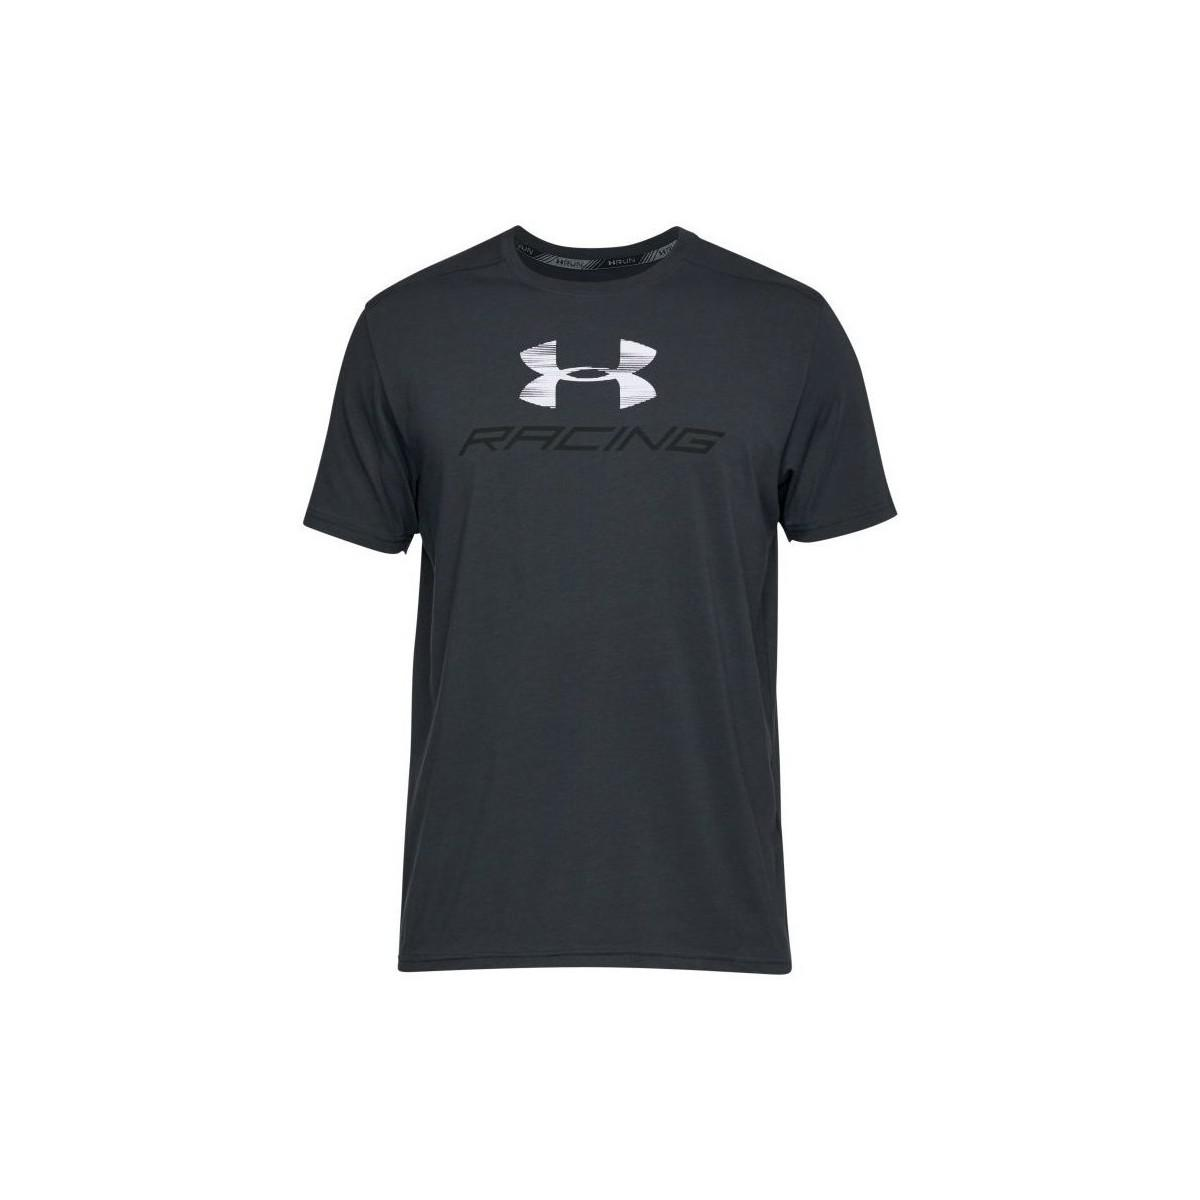 acf4fc5cc93b Under Armour Racing Pack Ss Men's T Shirt In Black in Black for Men ...